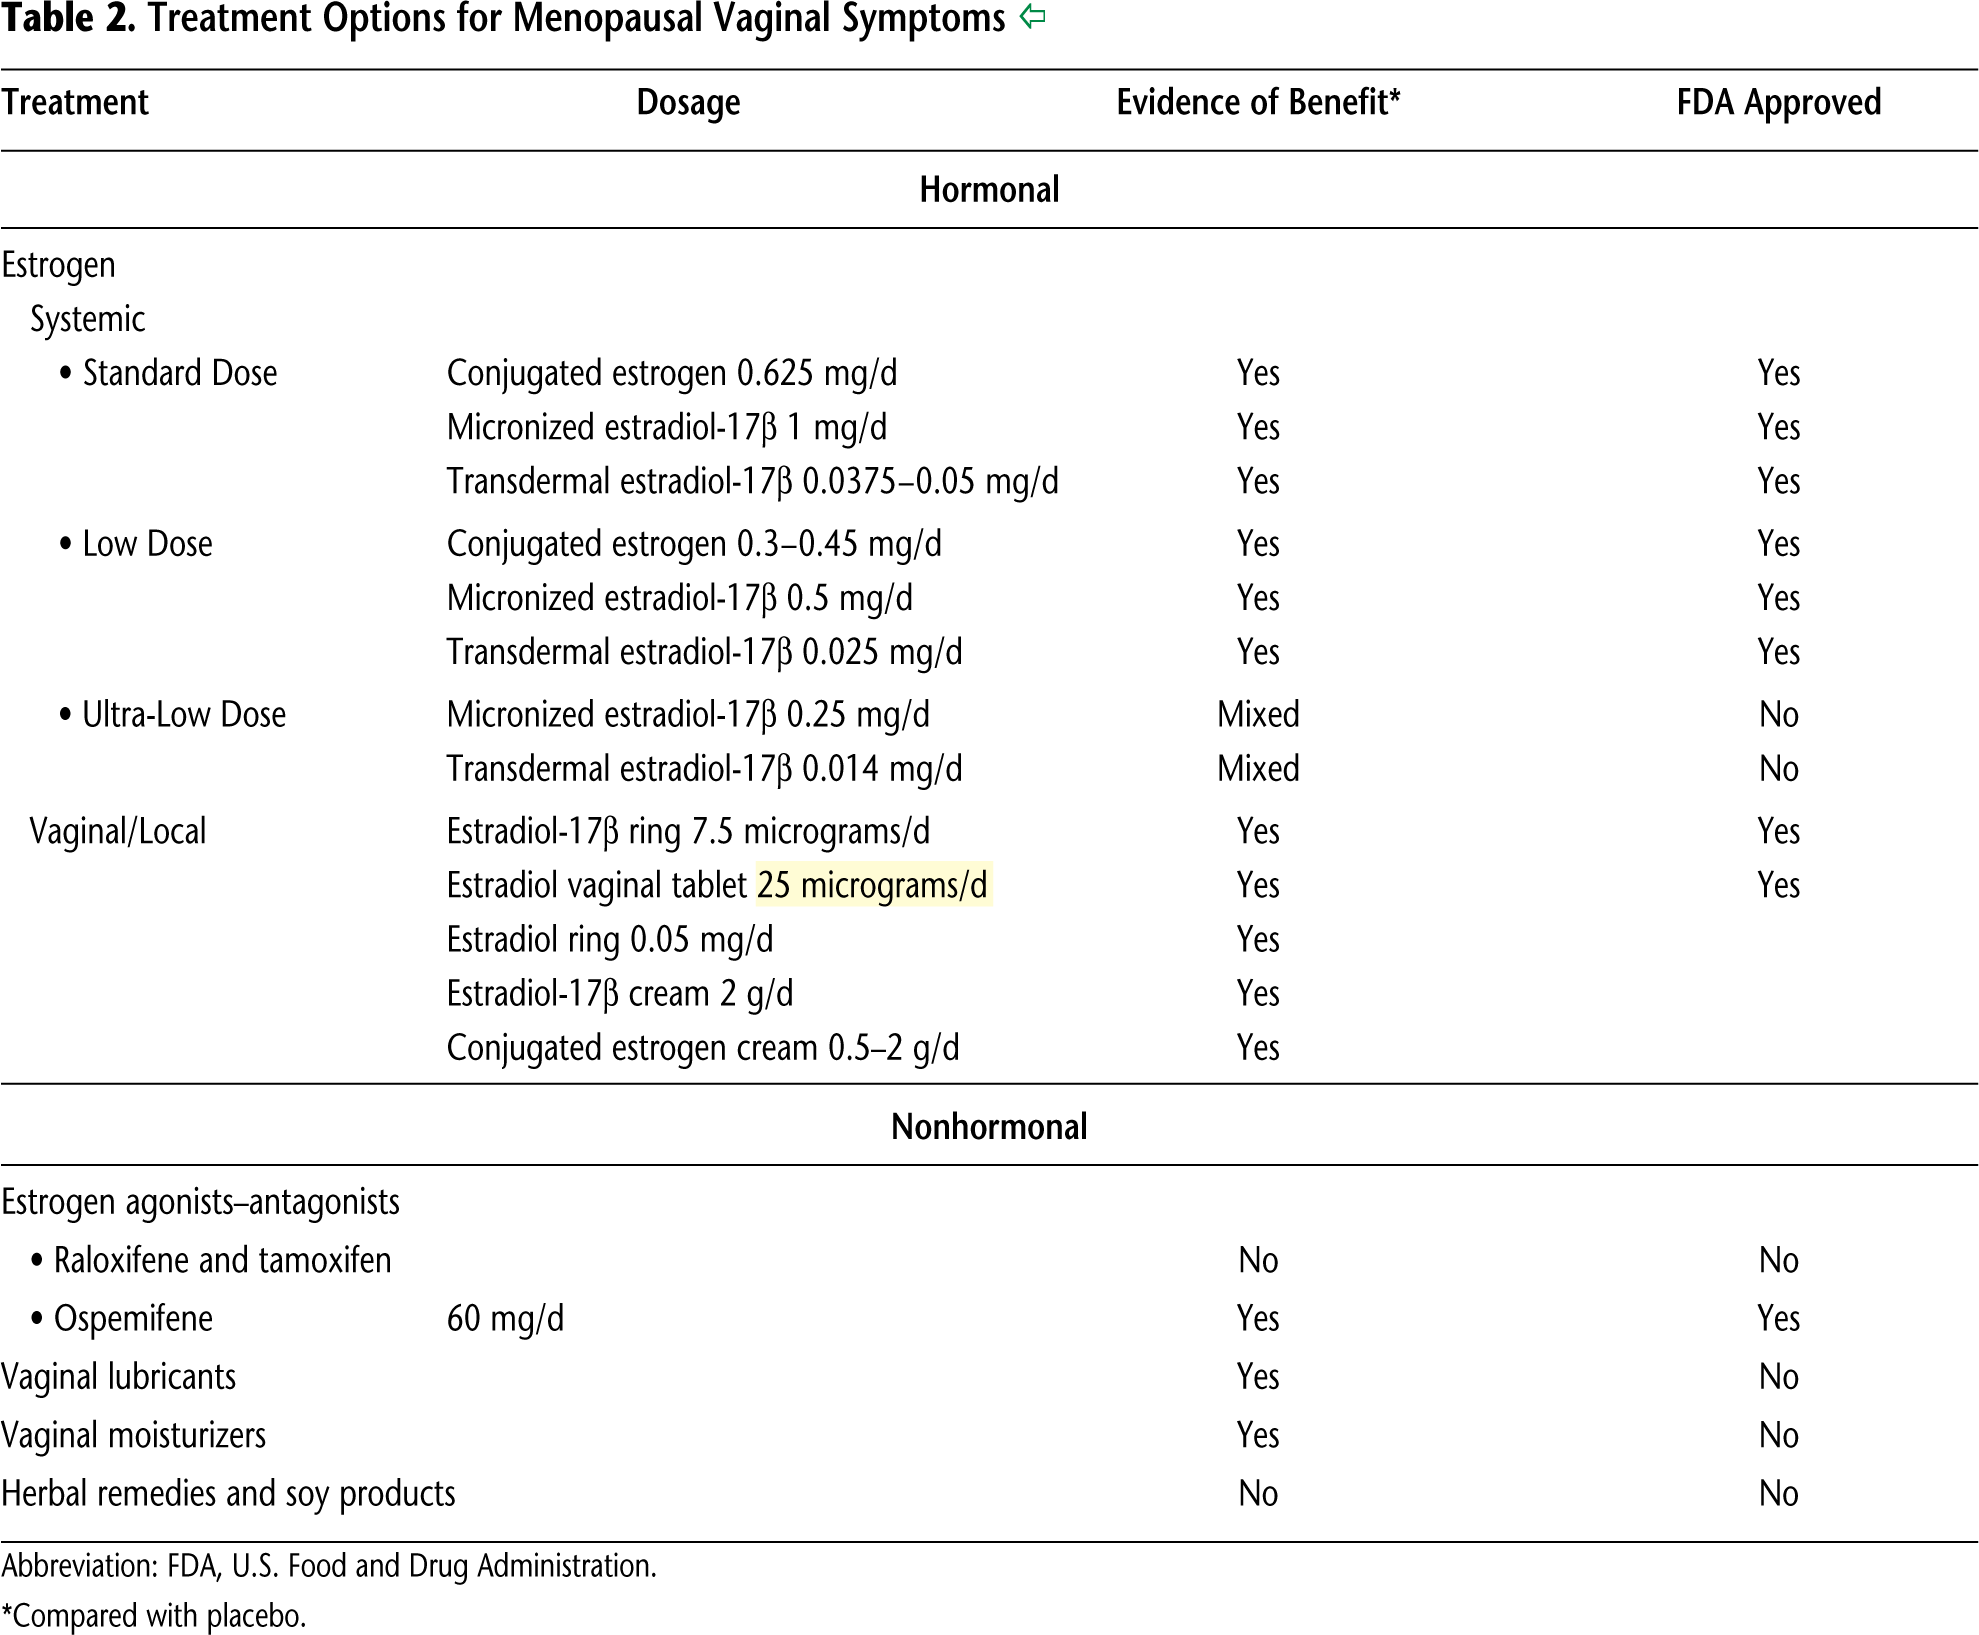 Table 2. Treatment Options for Menopausal Vaginal Symptoms